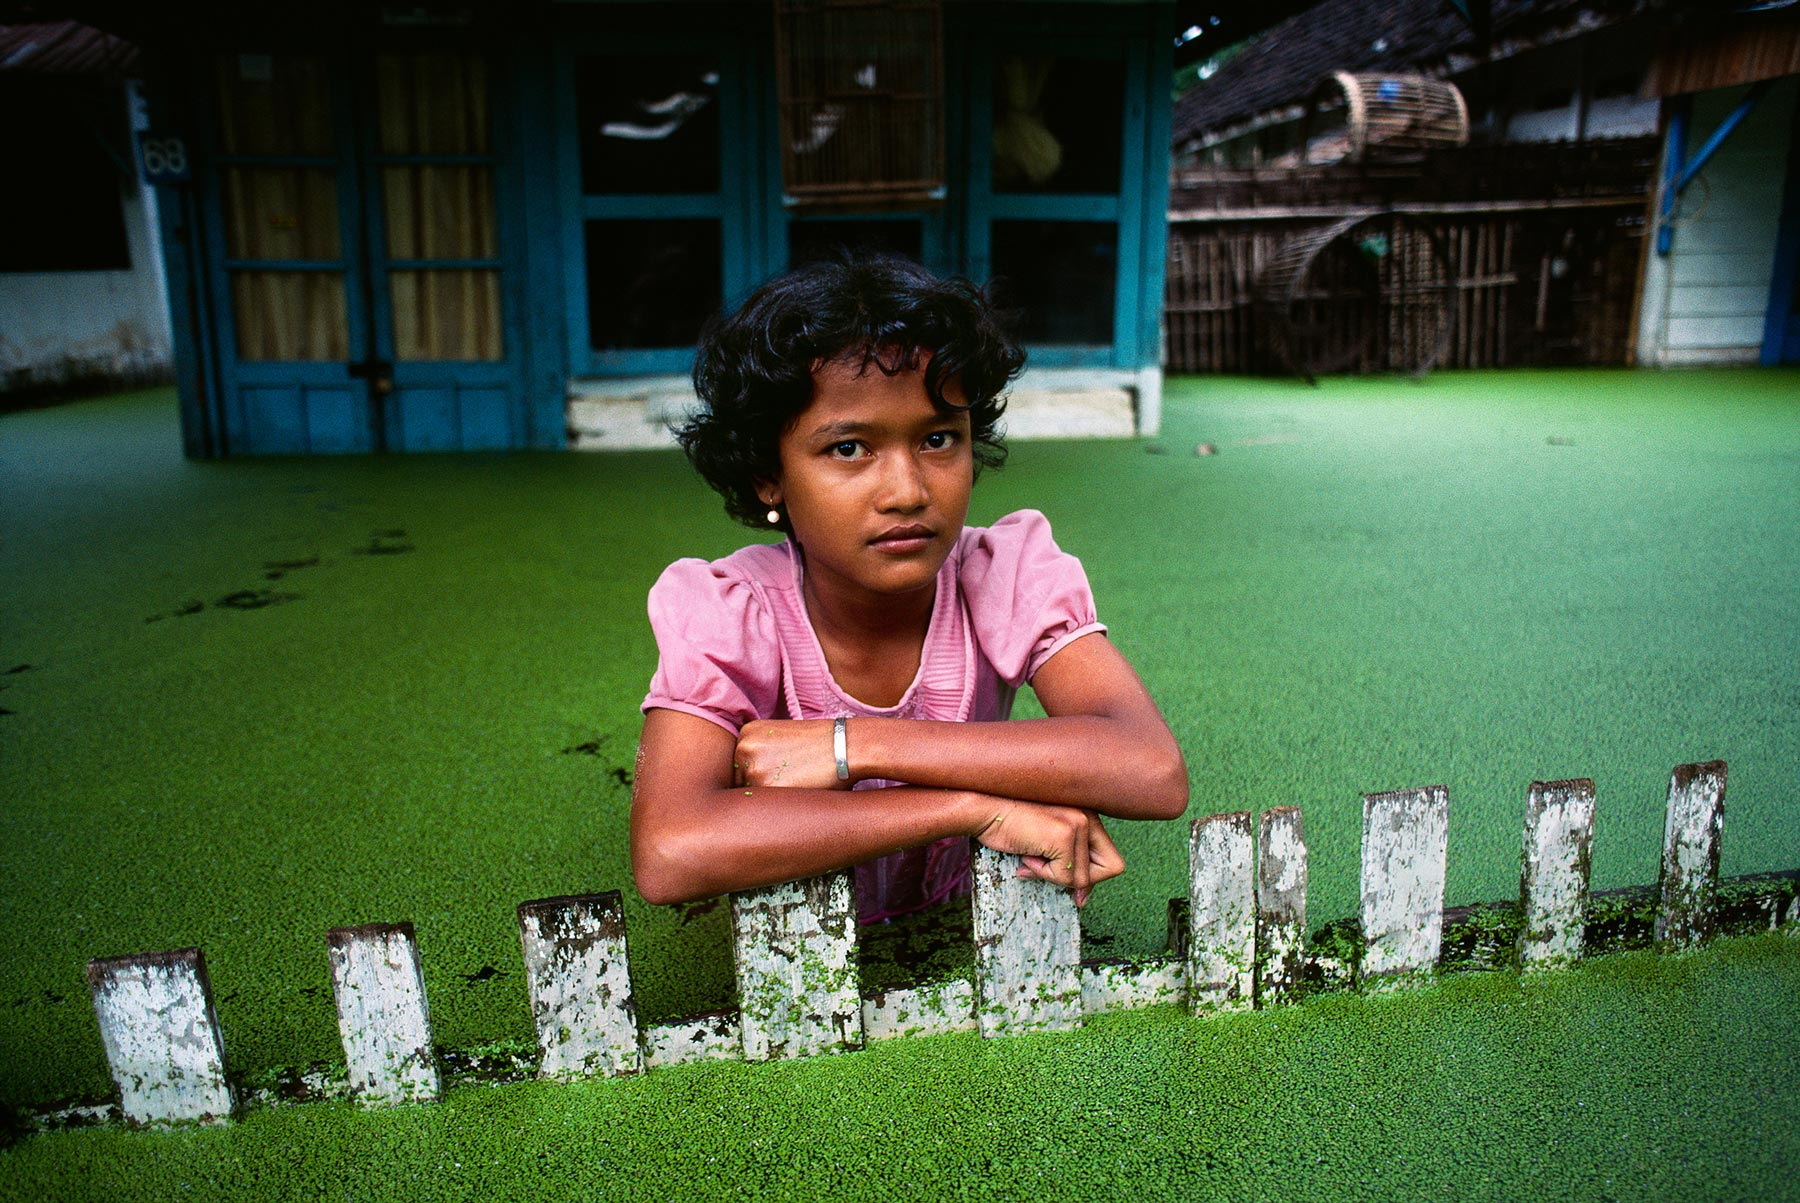 http://photos.stevemccurry.com.s3.amazonaws.com/sites/default/files/gallery/INDONESIA-10004.jpg